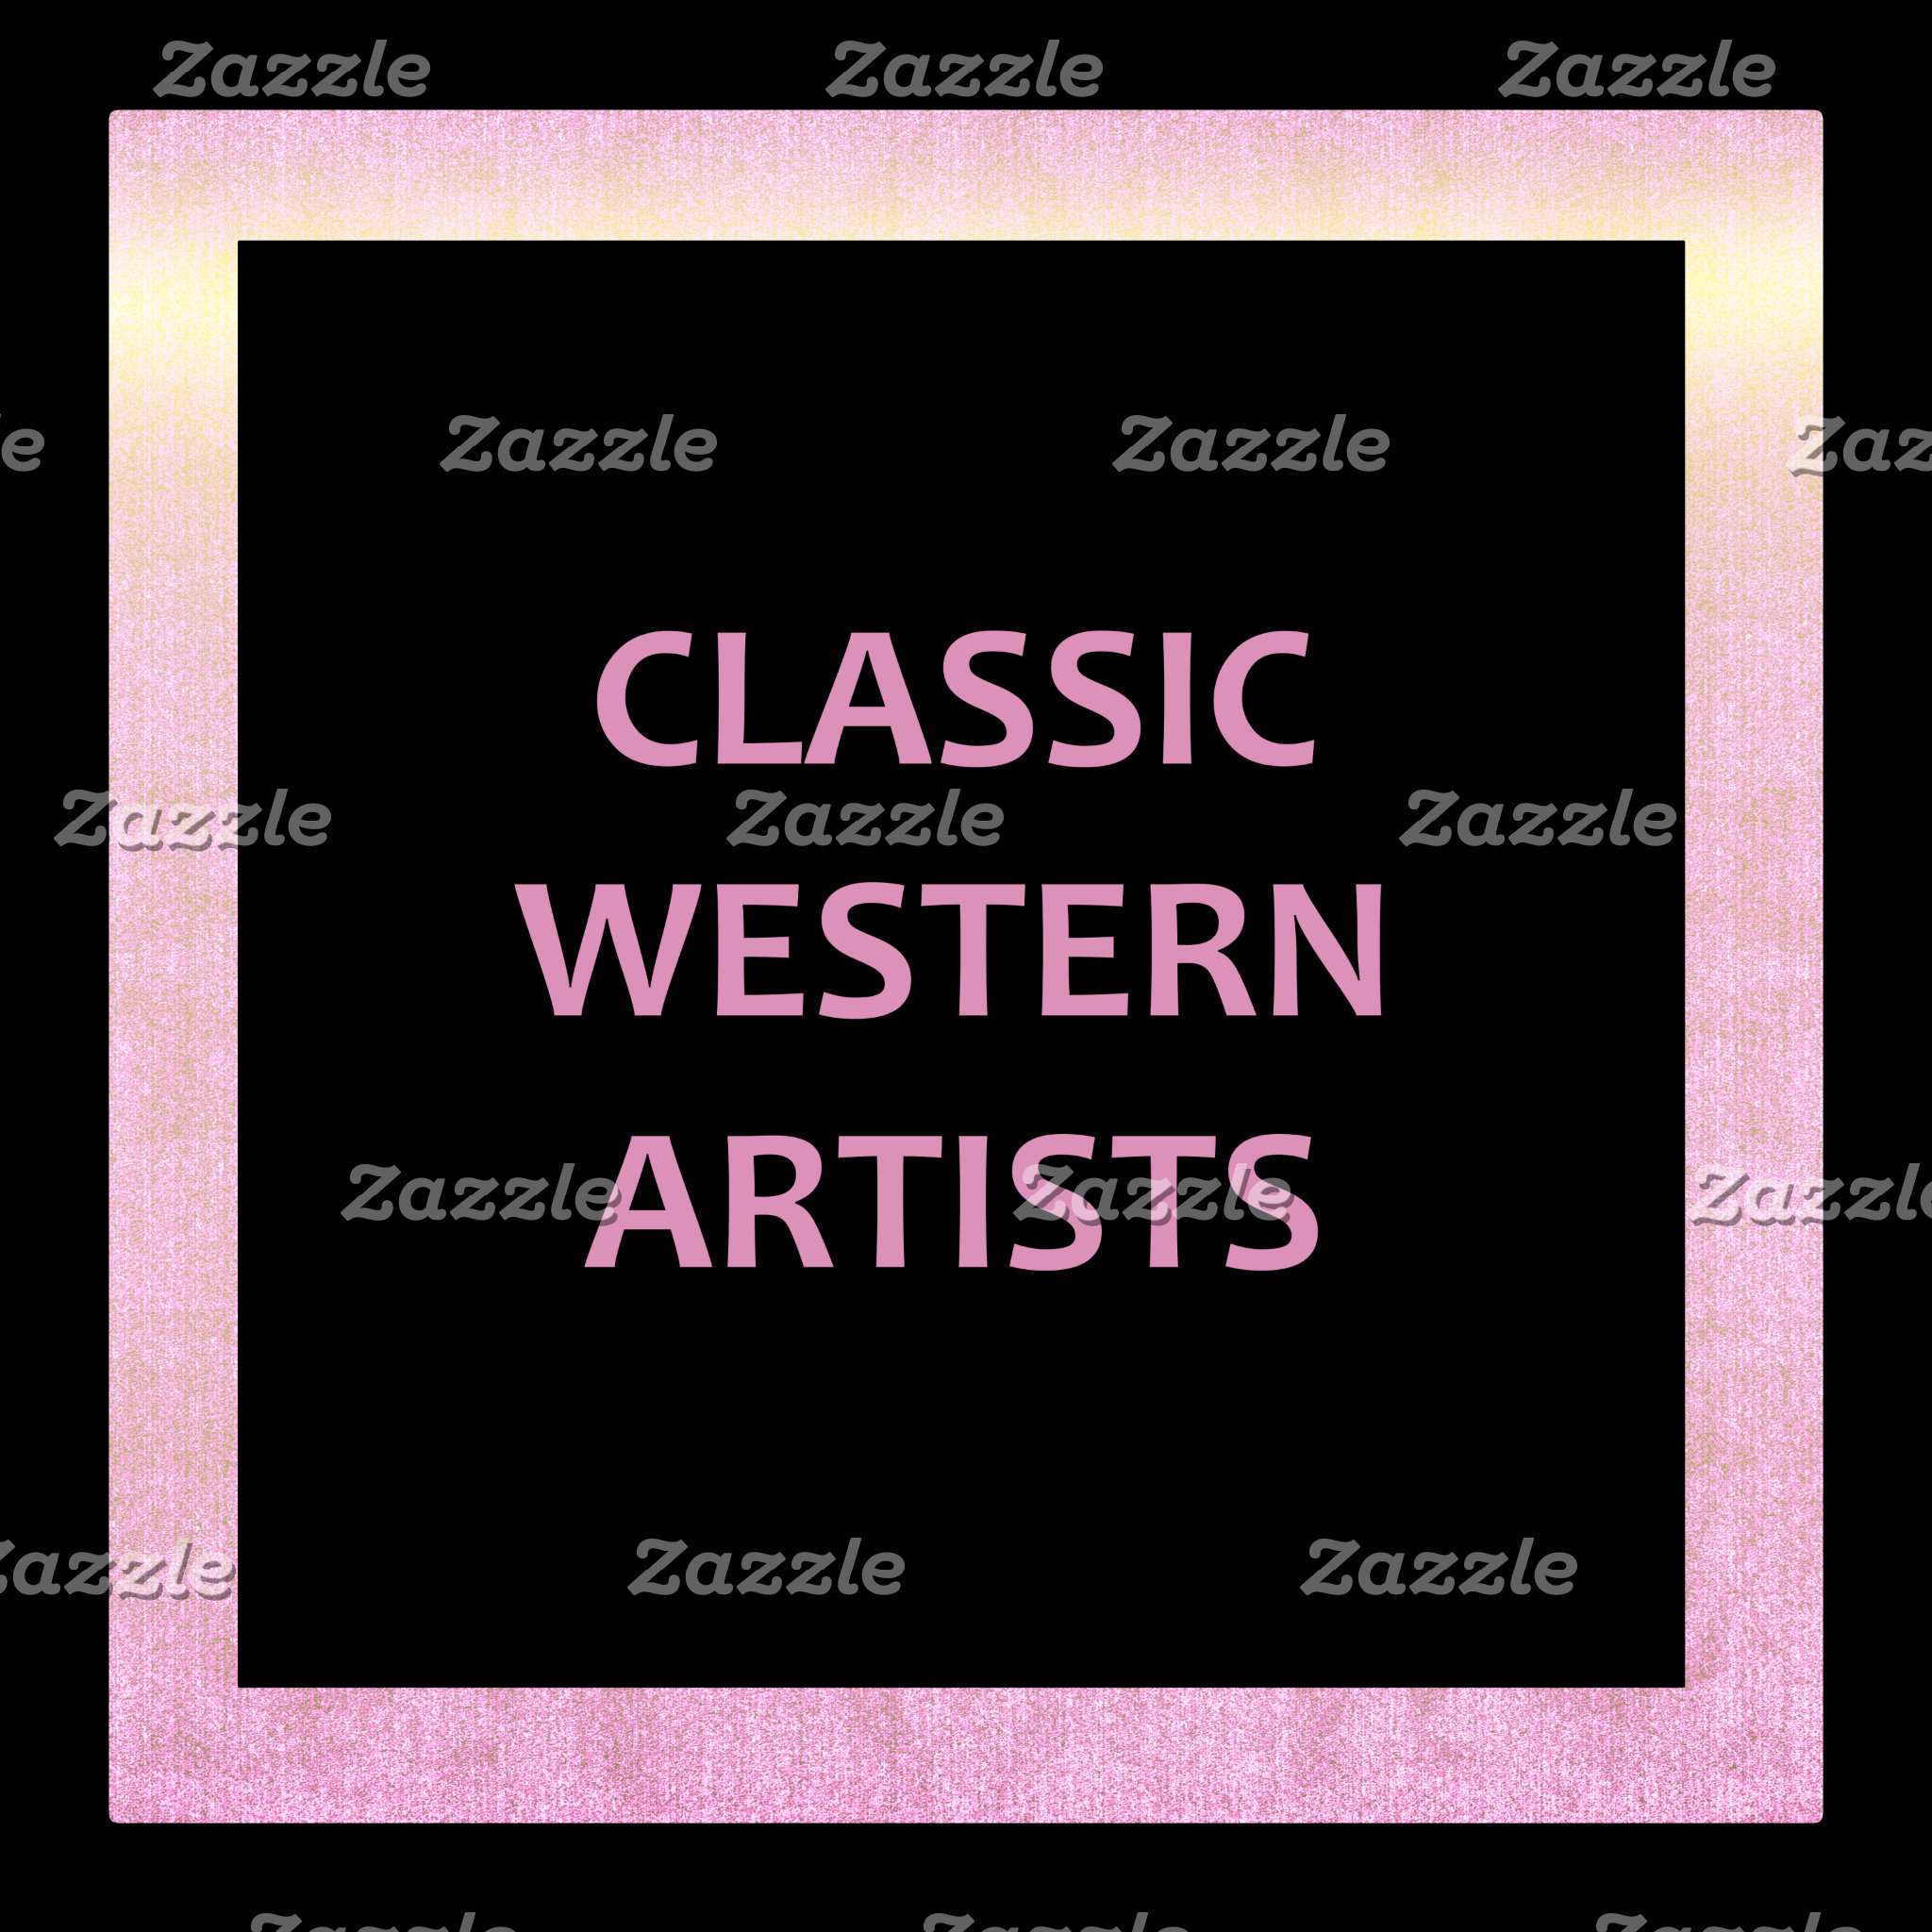 Classic Western Artists